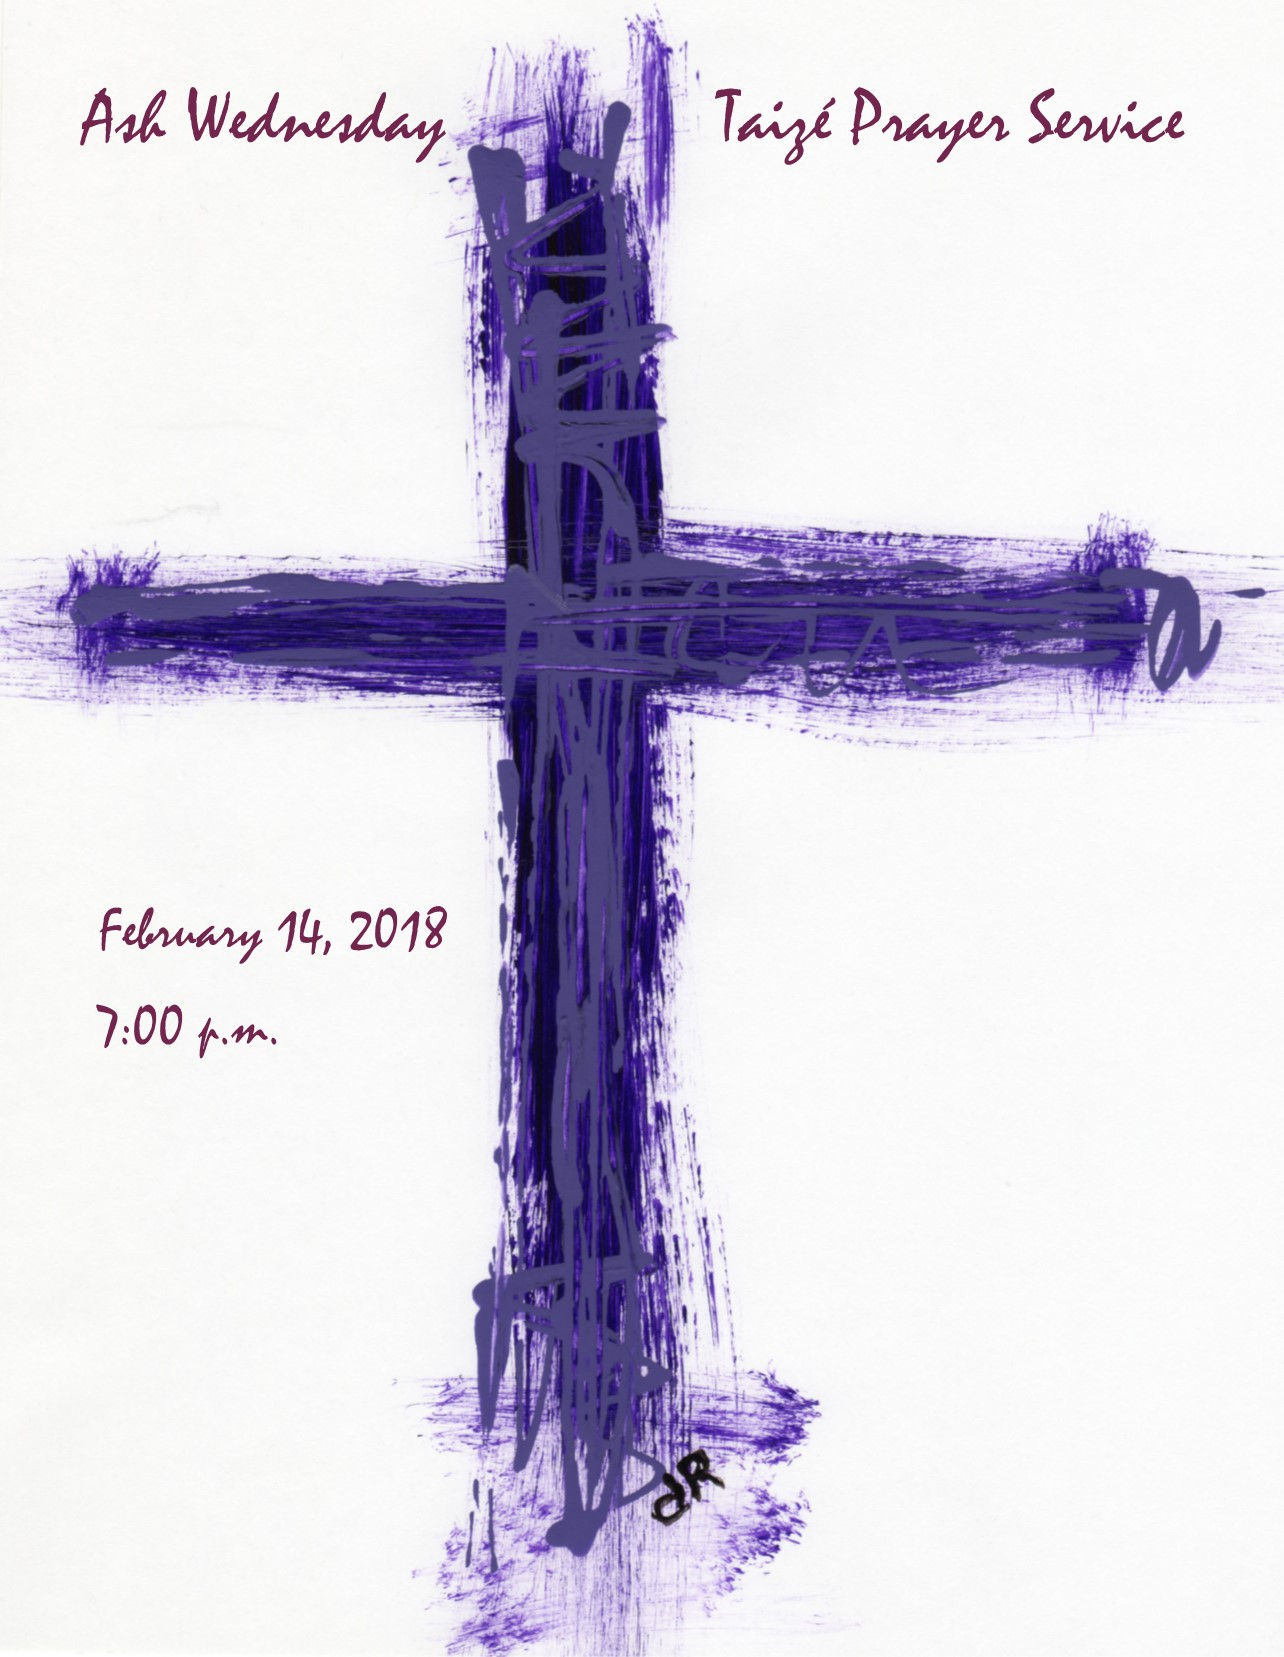 Ash Wednesday 2018 Picture.jpg